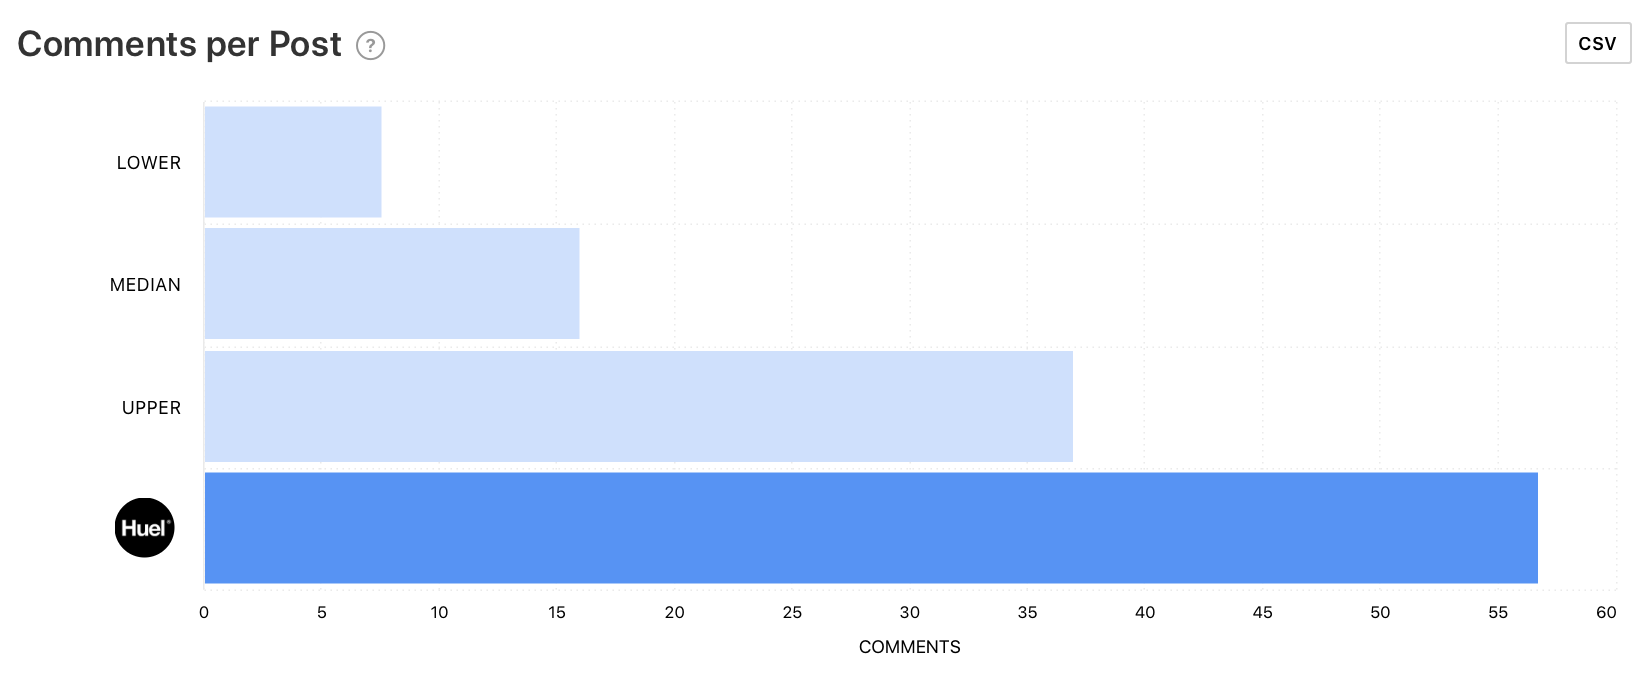 Comments per Post graph by Minter.io